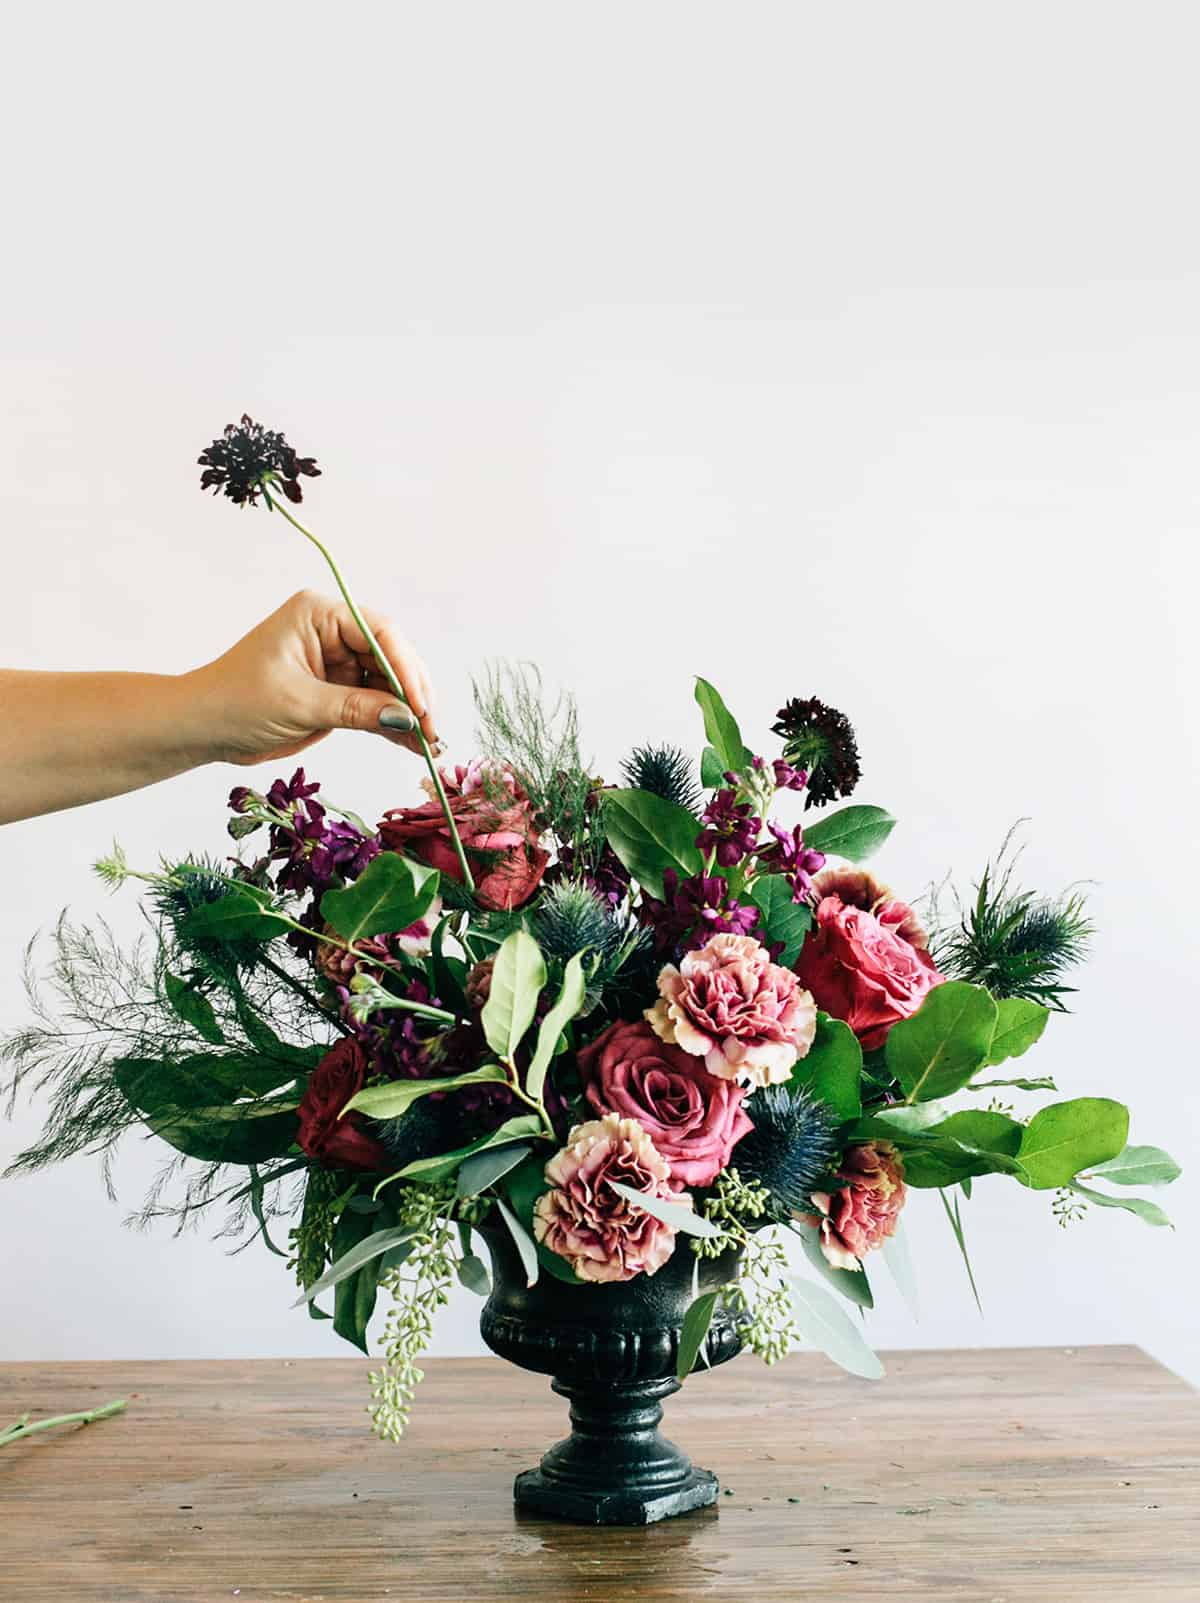 View more: http://allisonandres pass us/apw flower day